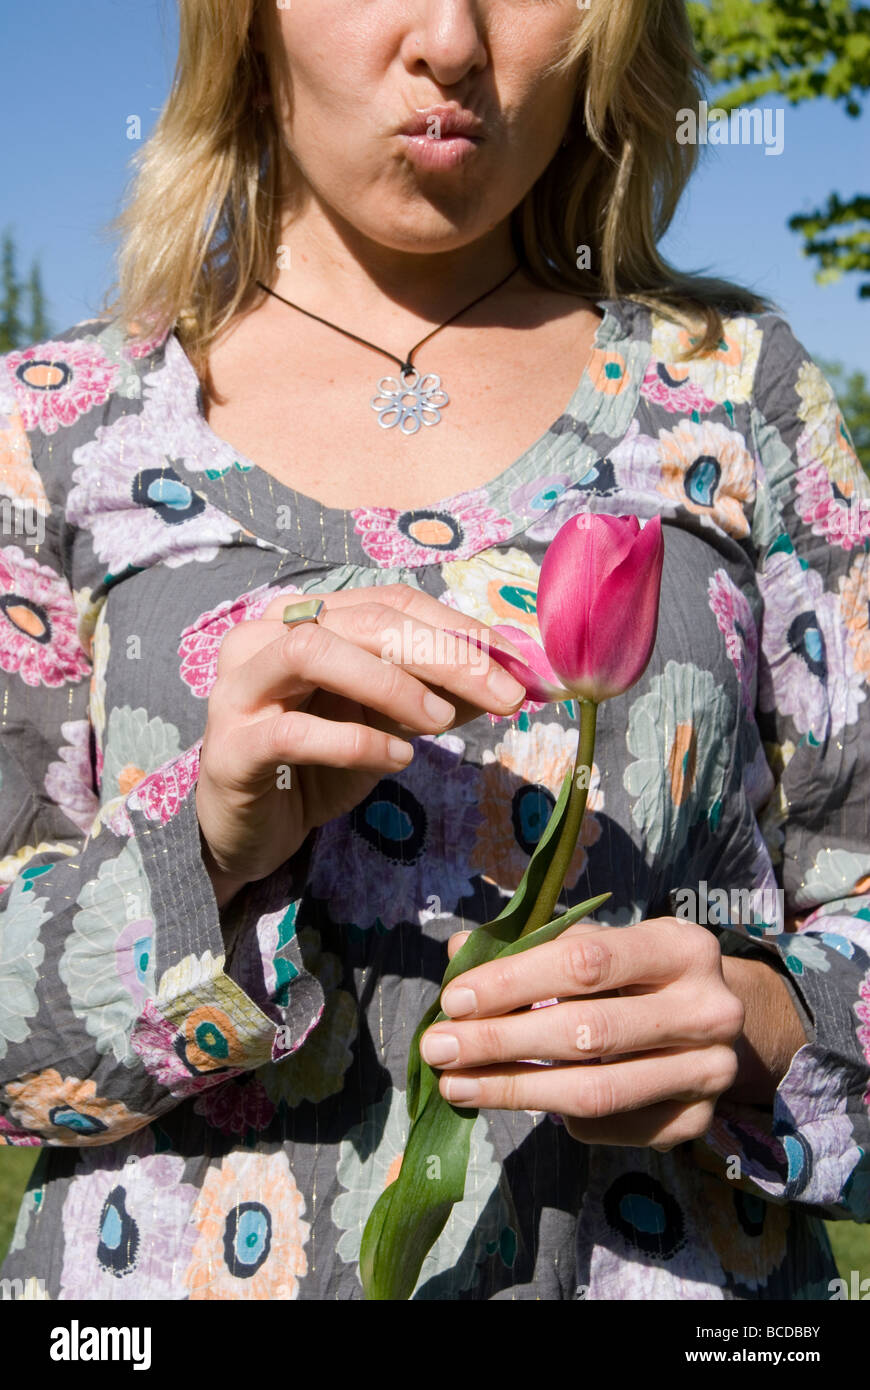 Partial view of woman ripping petals off of tulip - Stock Image